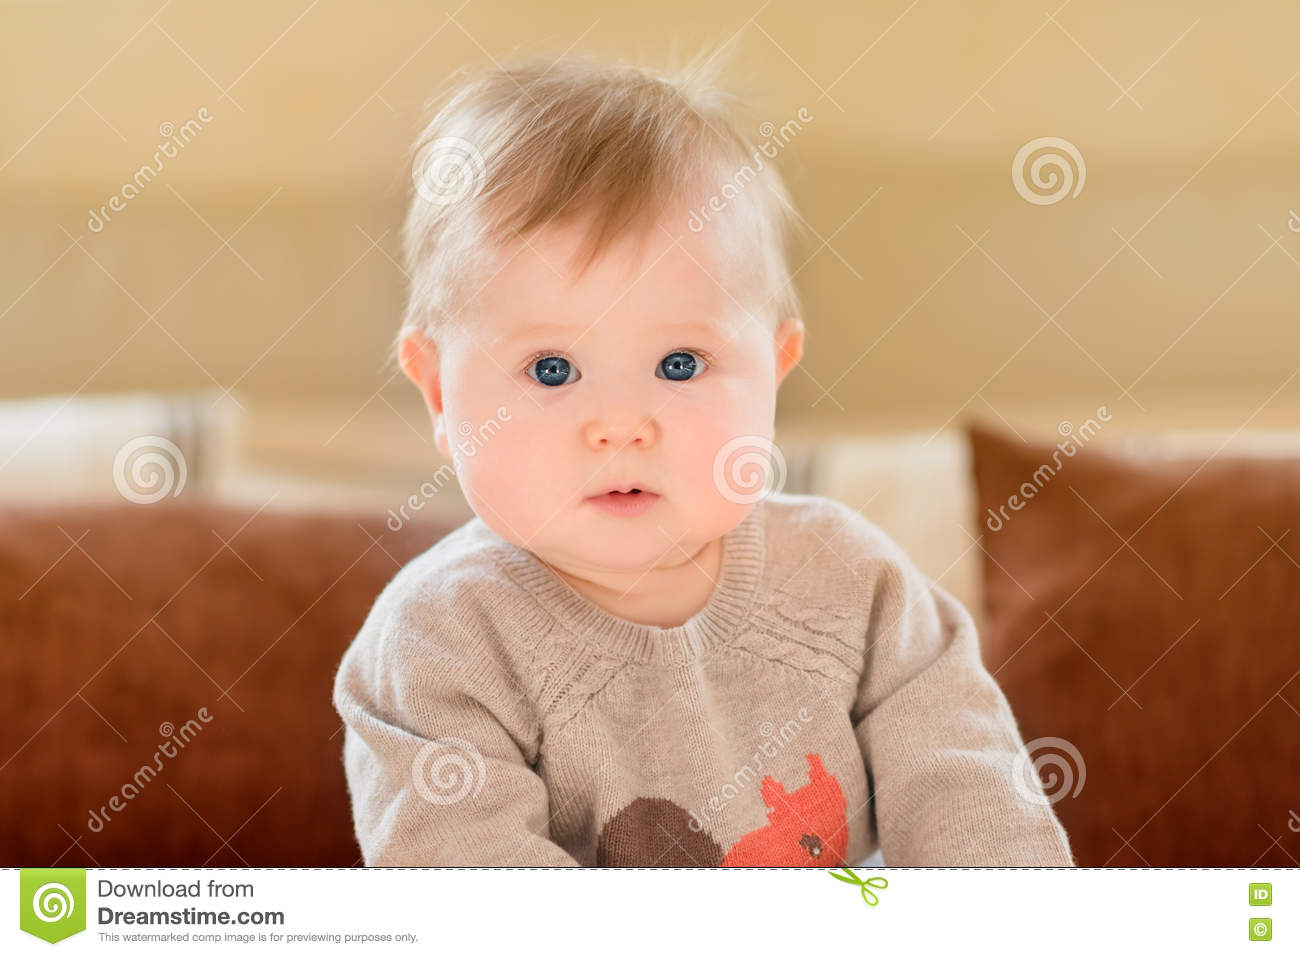 Portrait of amazed little child with blond hair and blue eyes wearing knitted sweater sitting on sofa and looking at camera